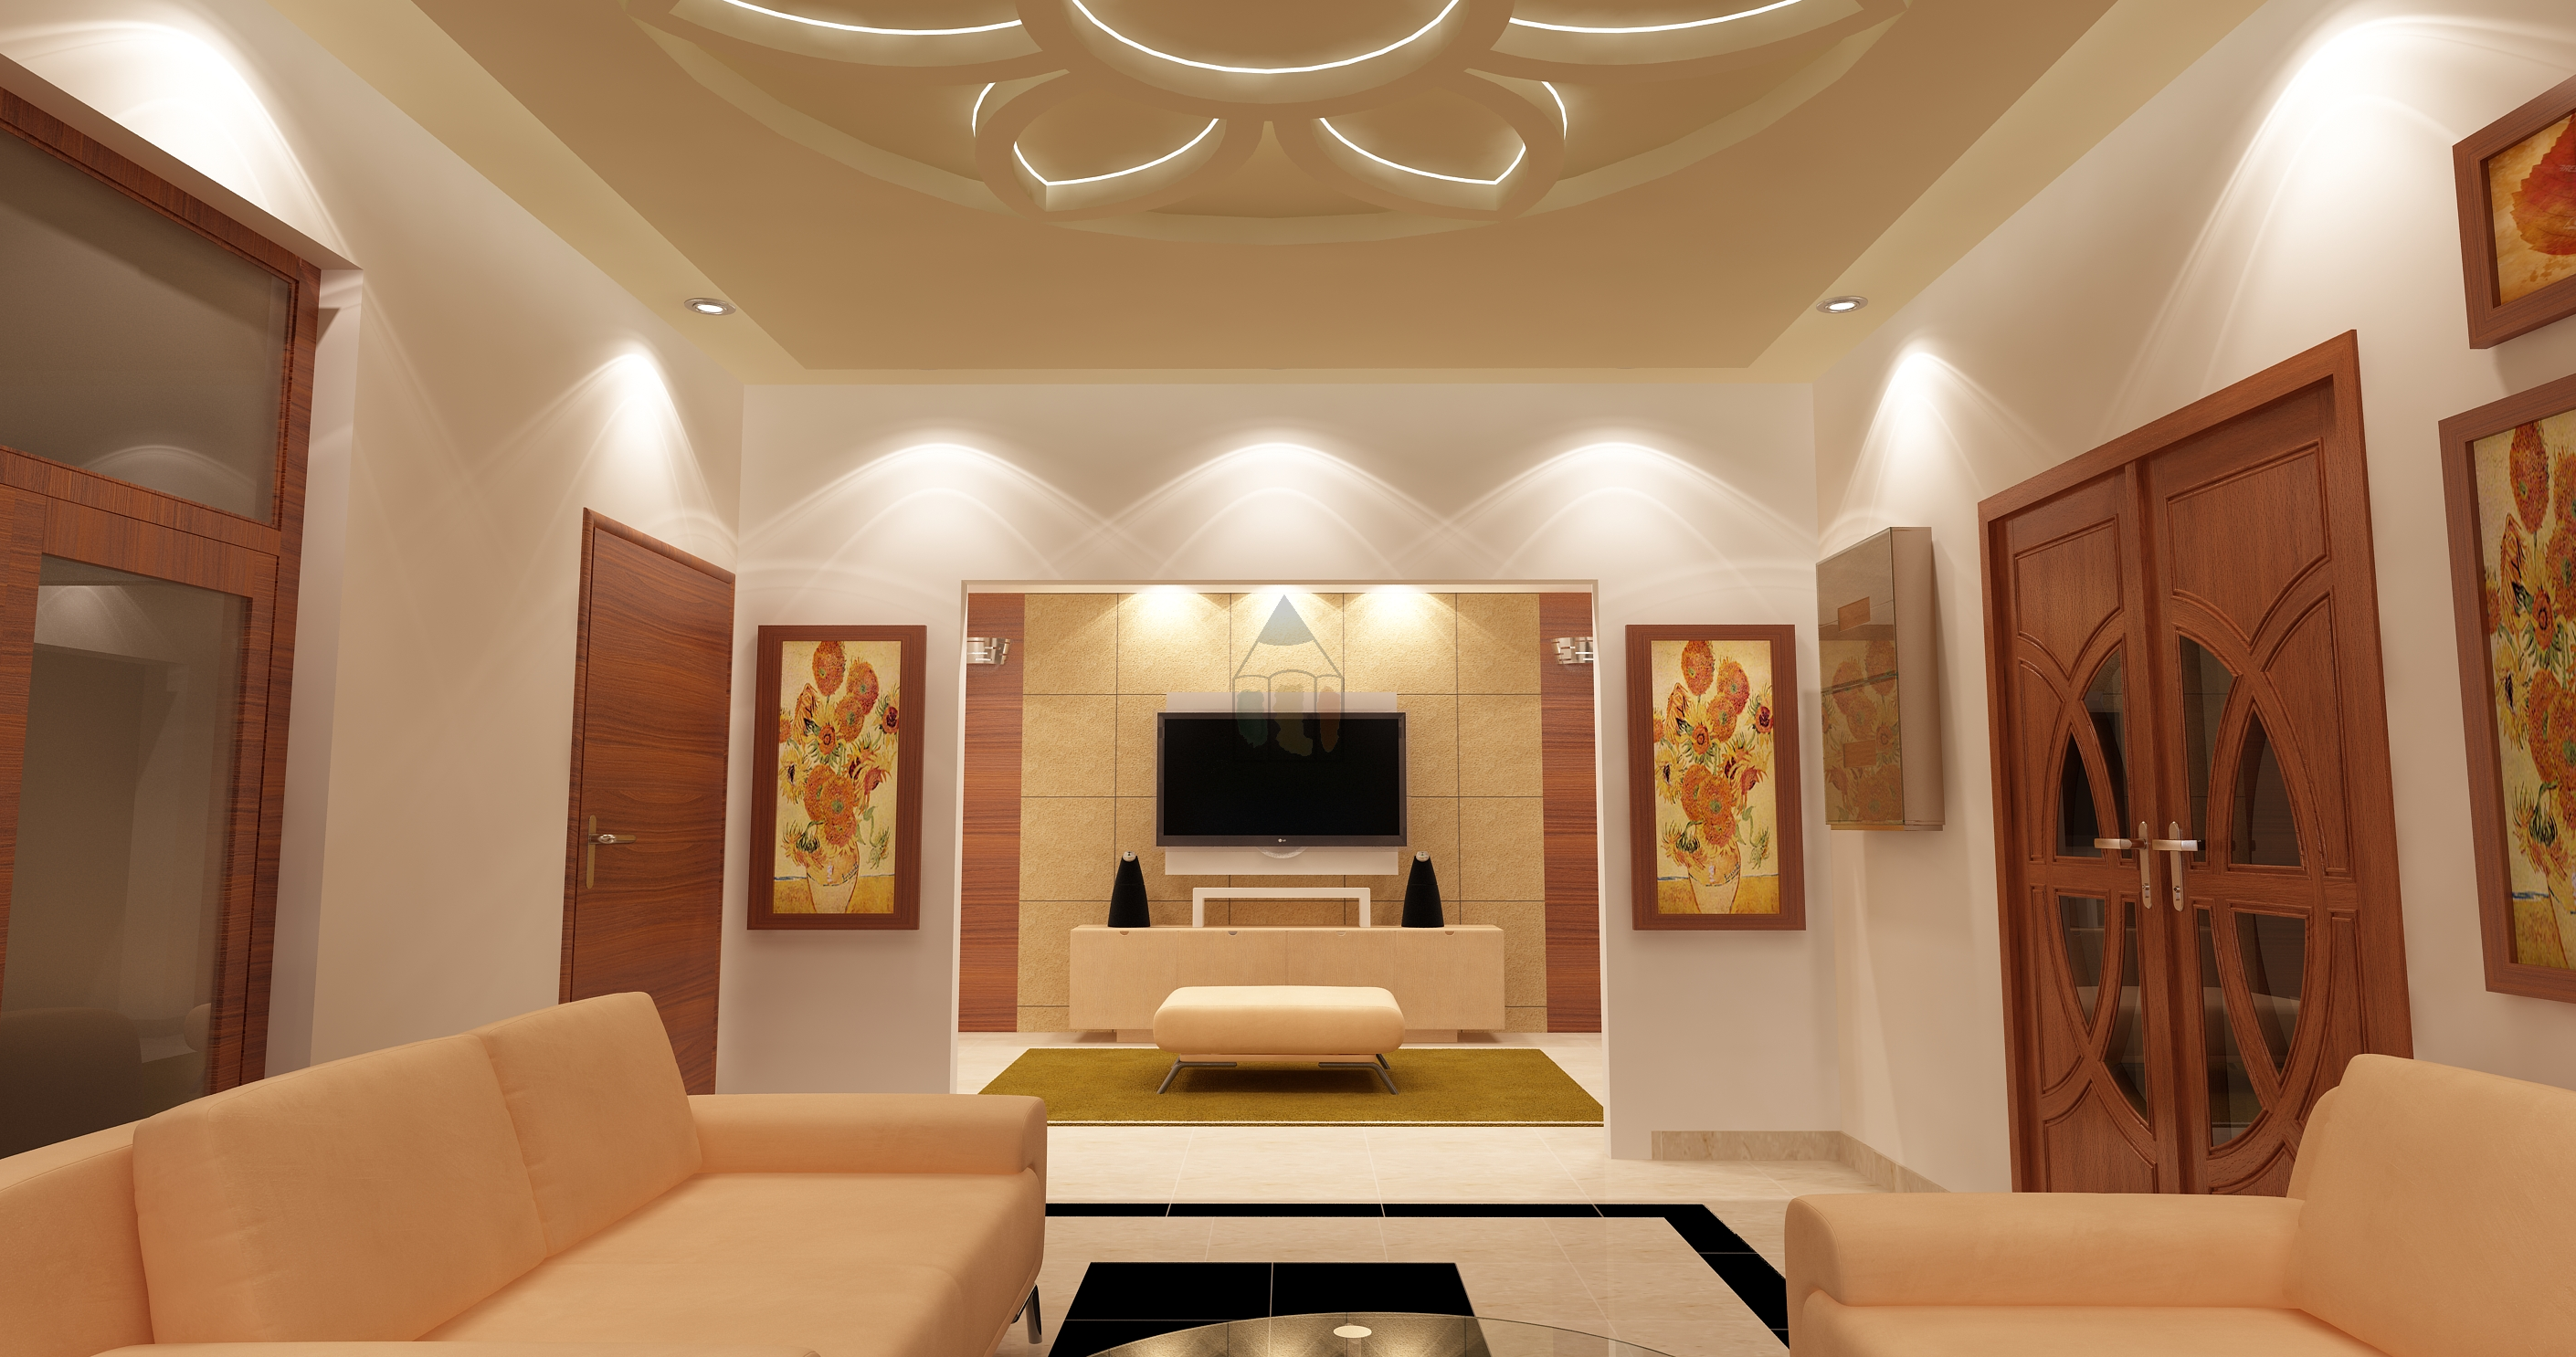 But a bigger question looms — w. TV Lounge Decoration with TV lounge ceiling design idea